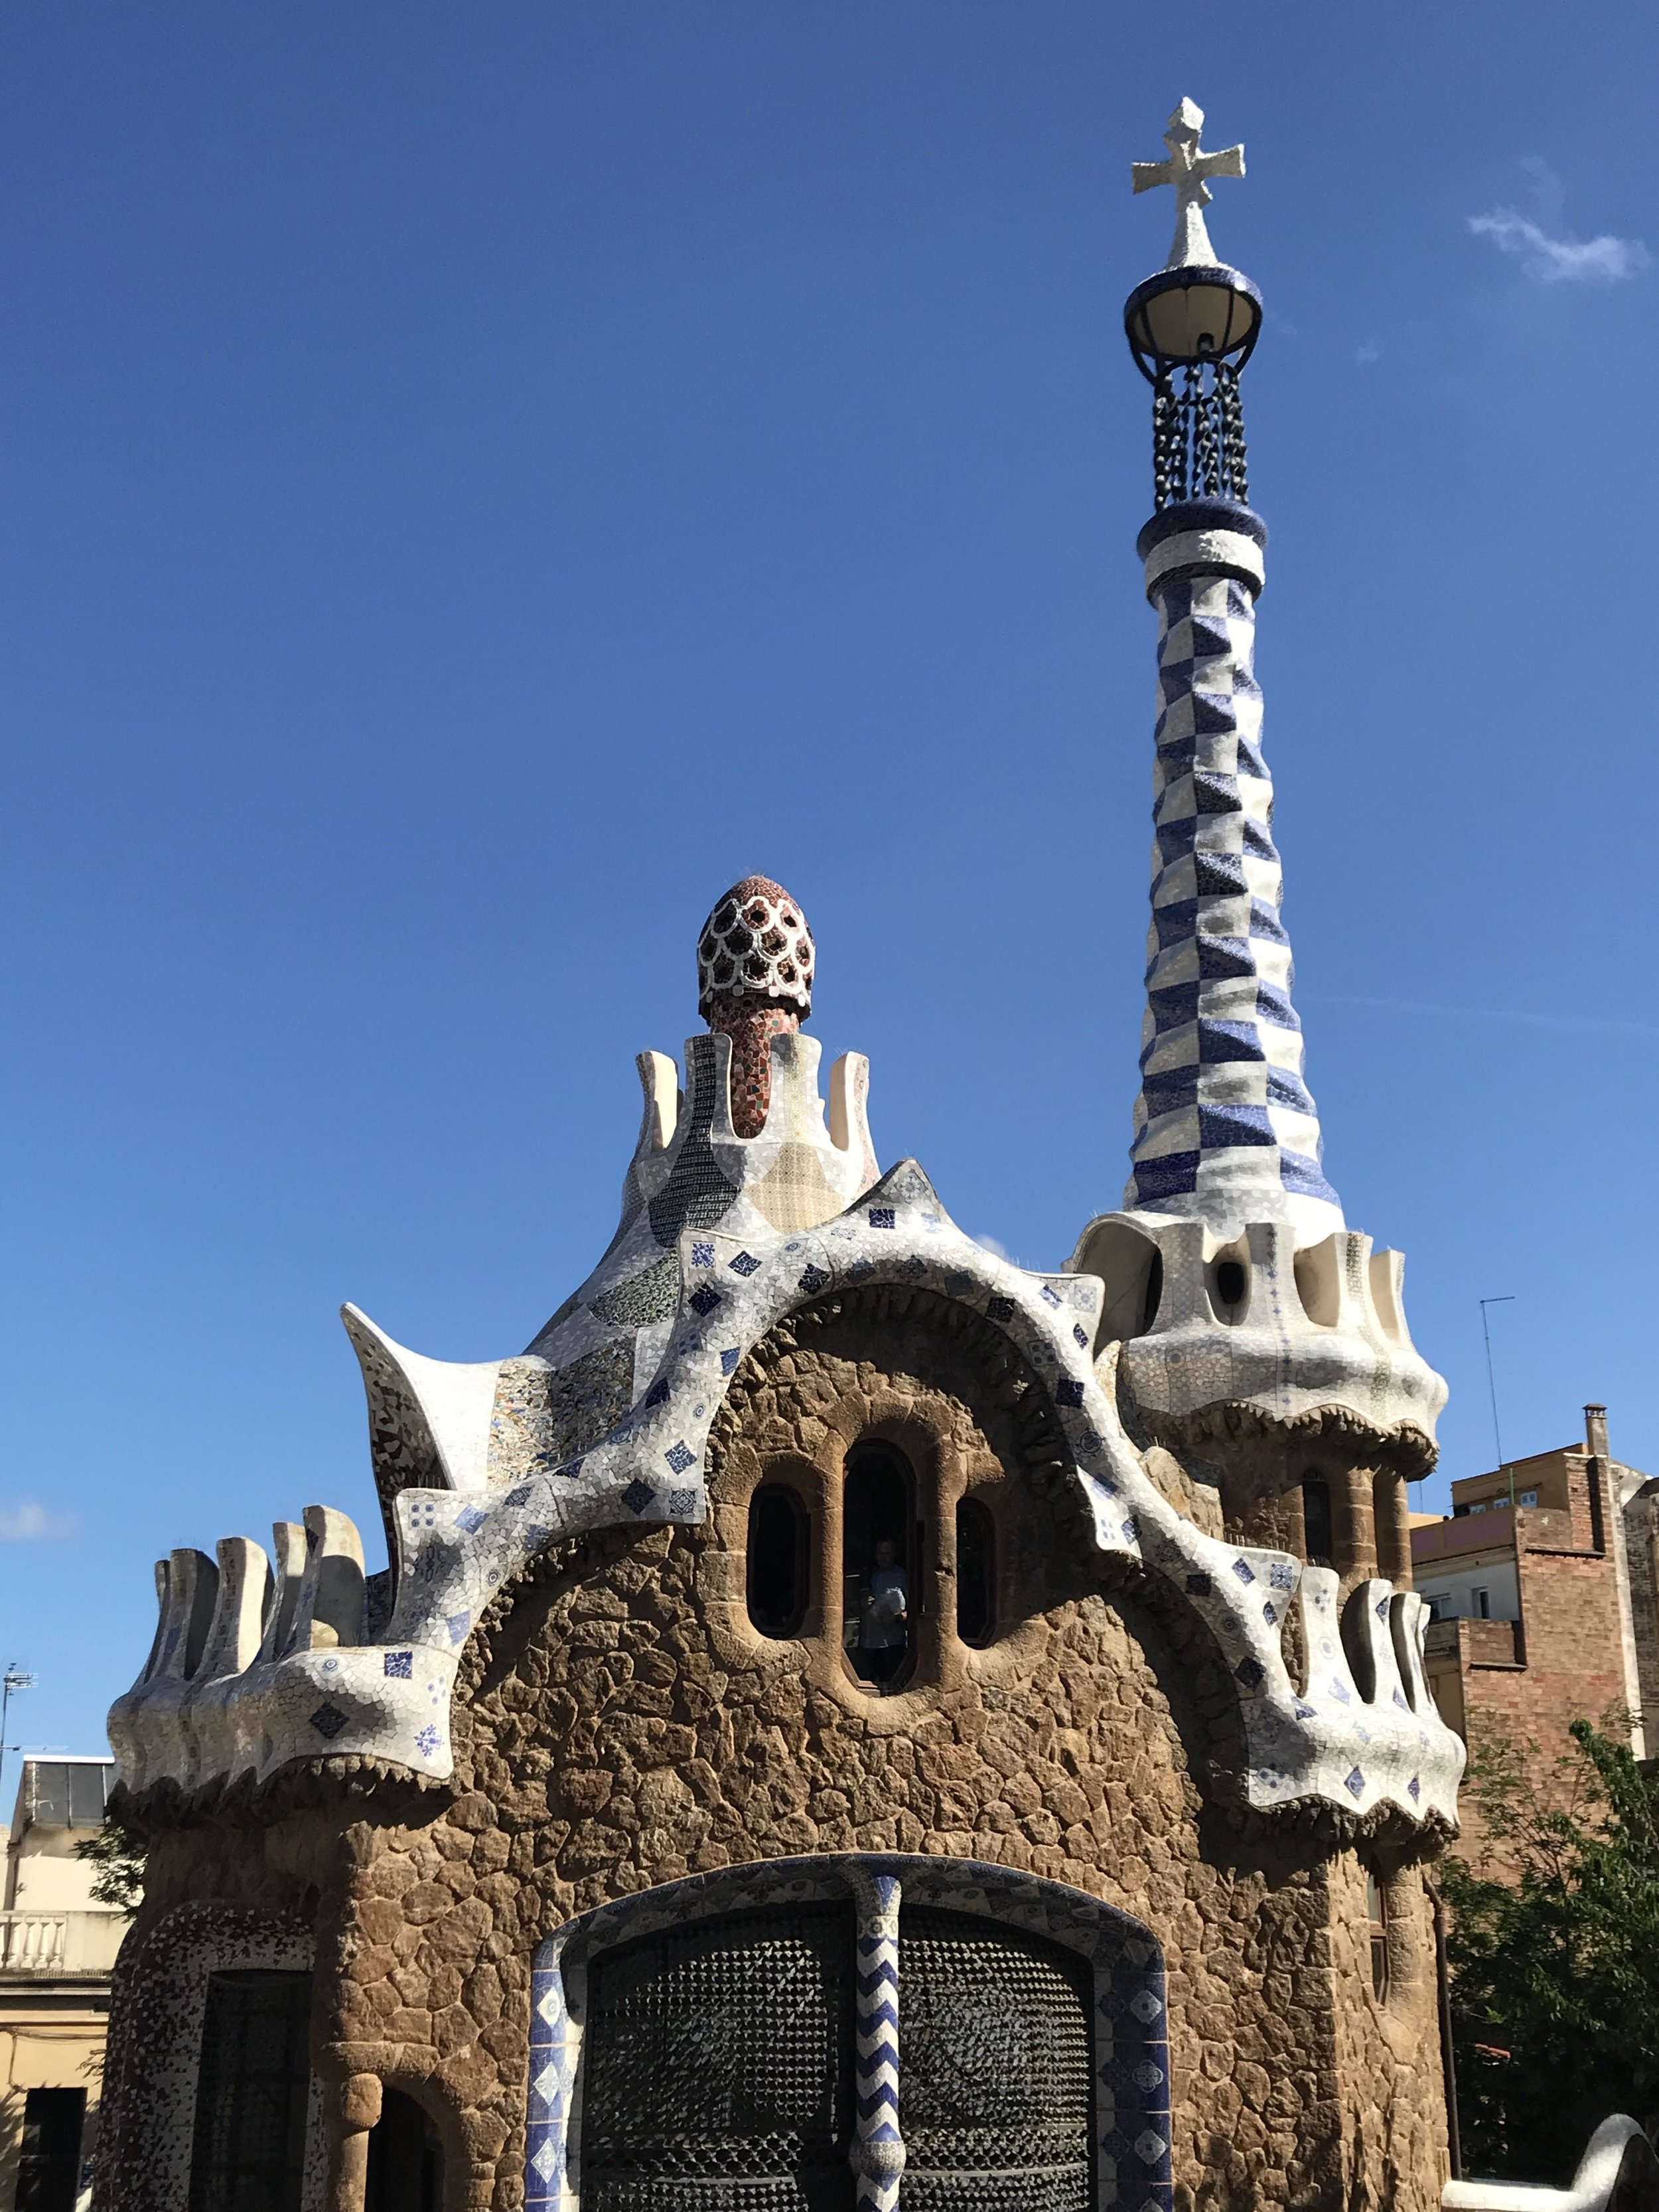 Gaudi's Parque Guell